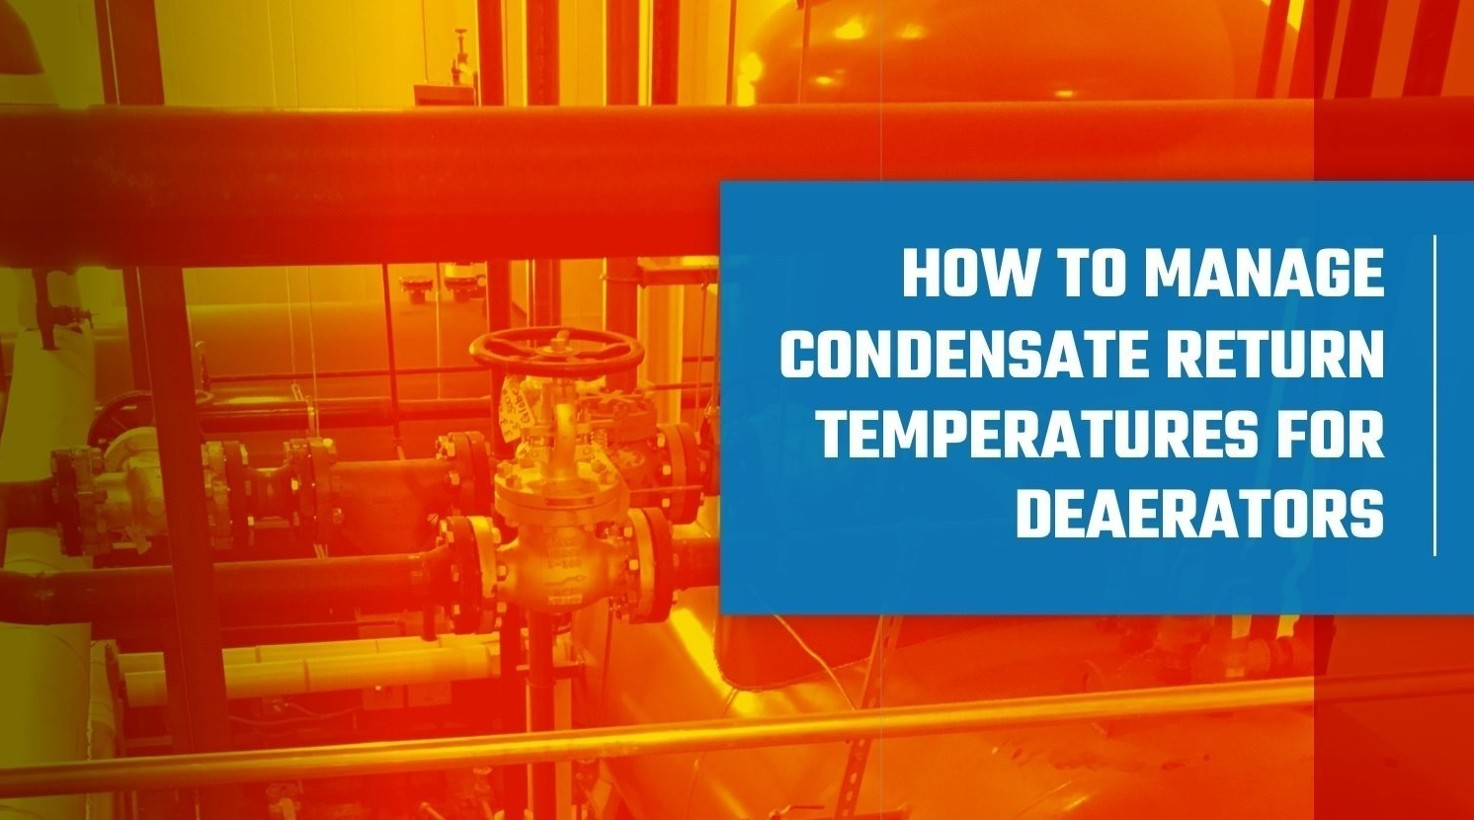 How to Manage Condensate Return Temperatures for Deaerators